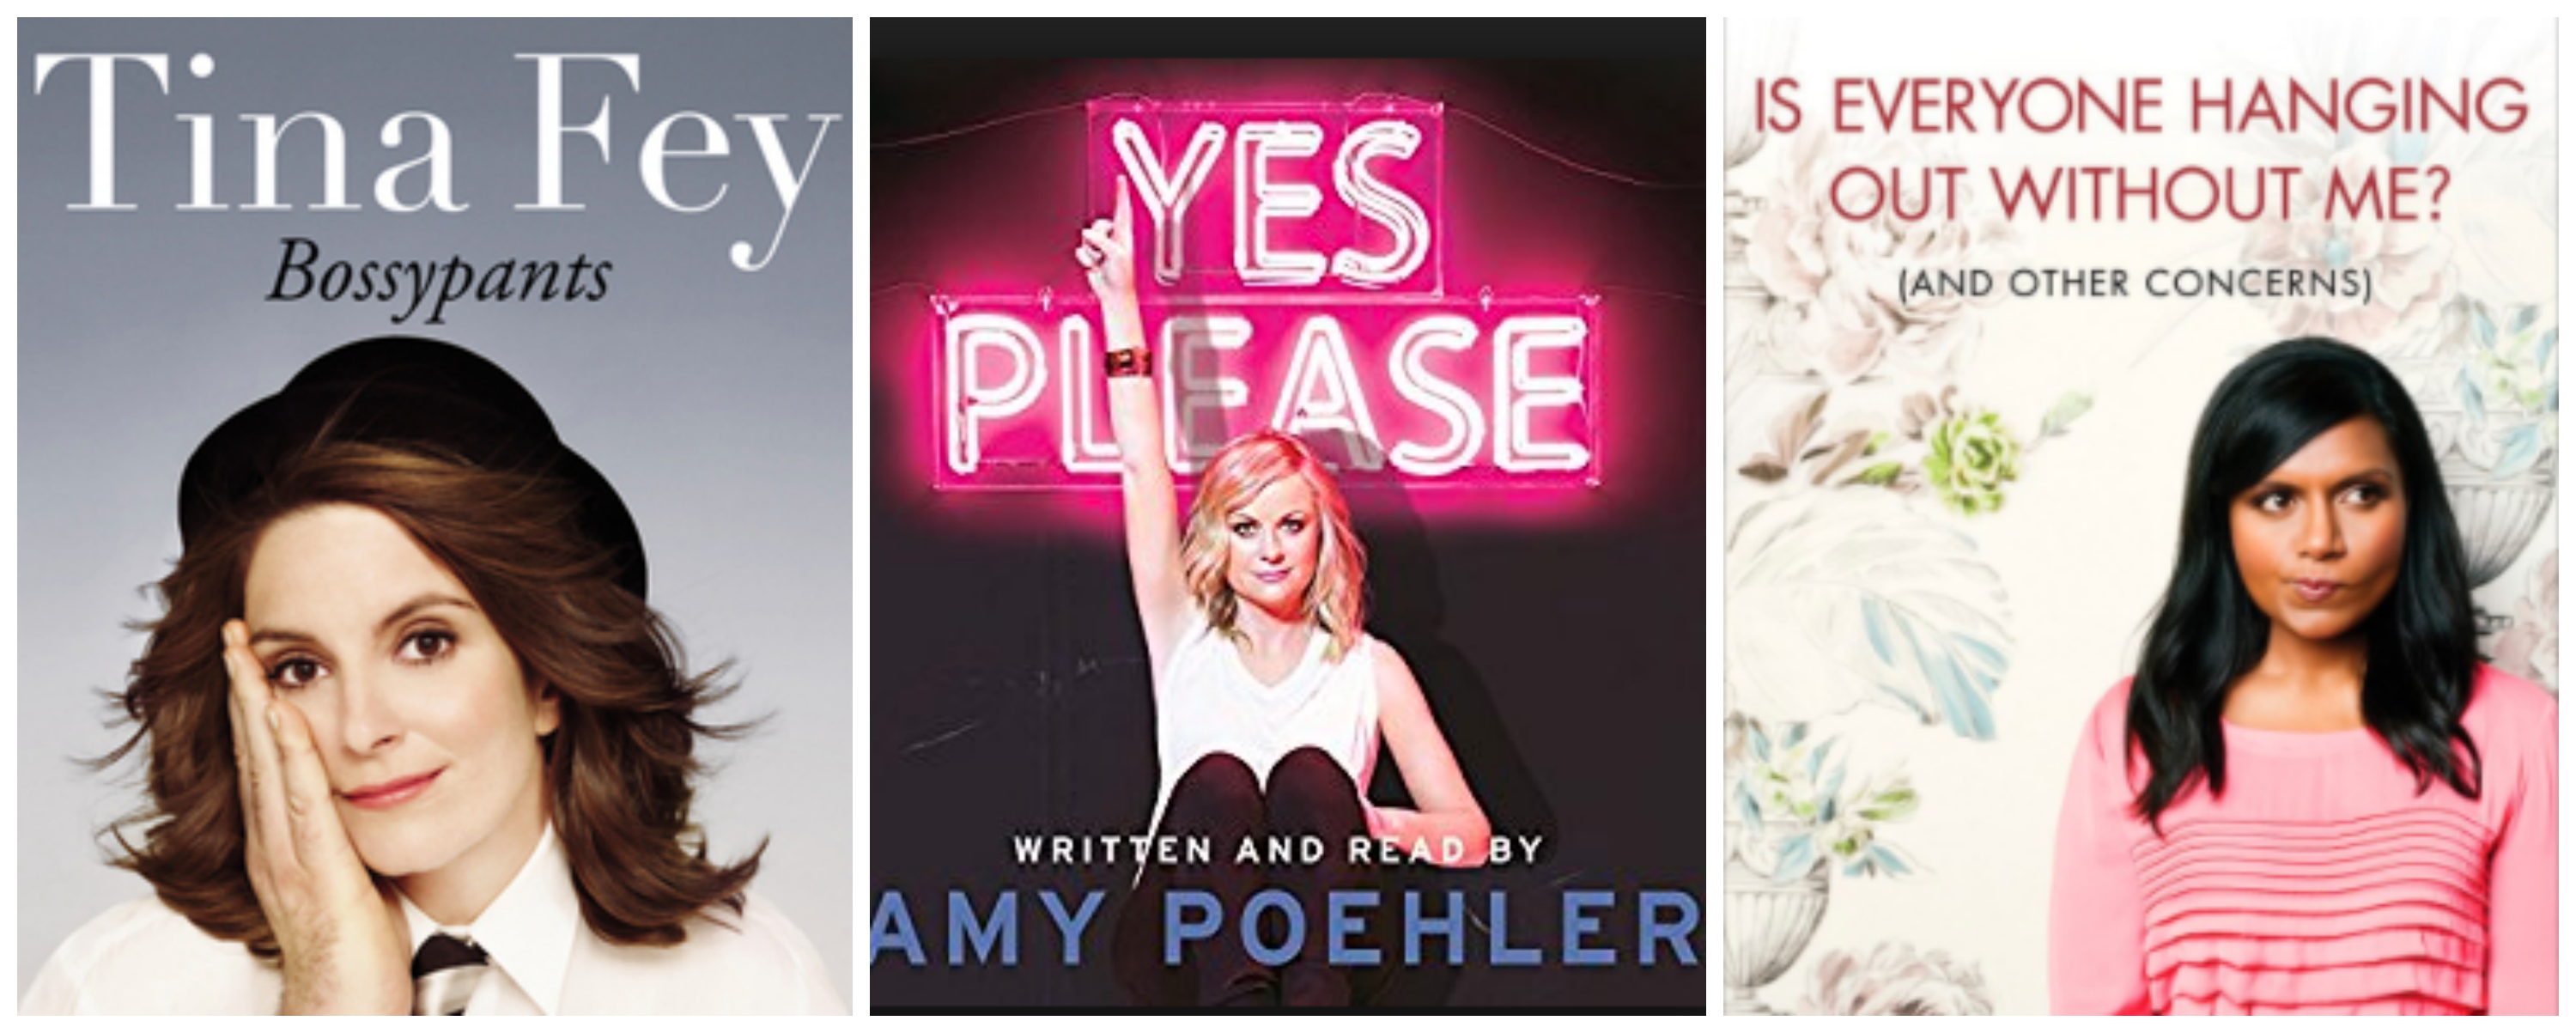 Bossypants By Tina Fey Yes, Please! By Amy Poehler Is Everyone Hanging  Out Without Me?